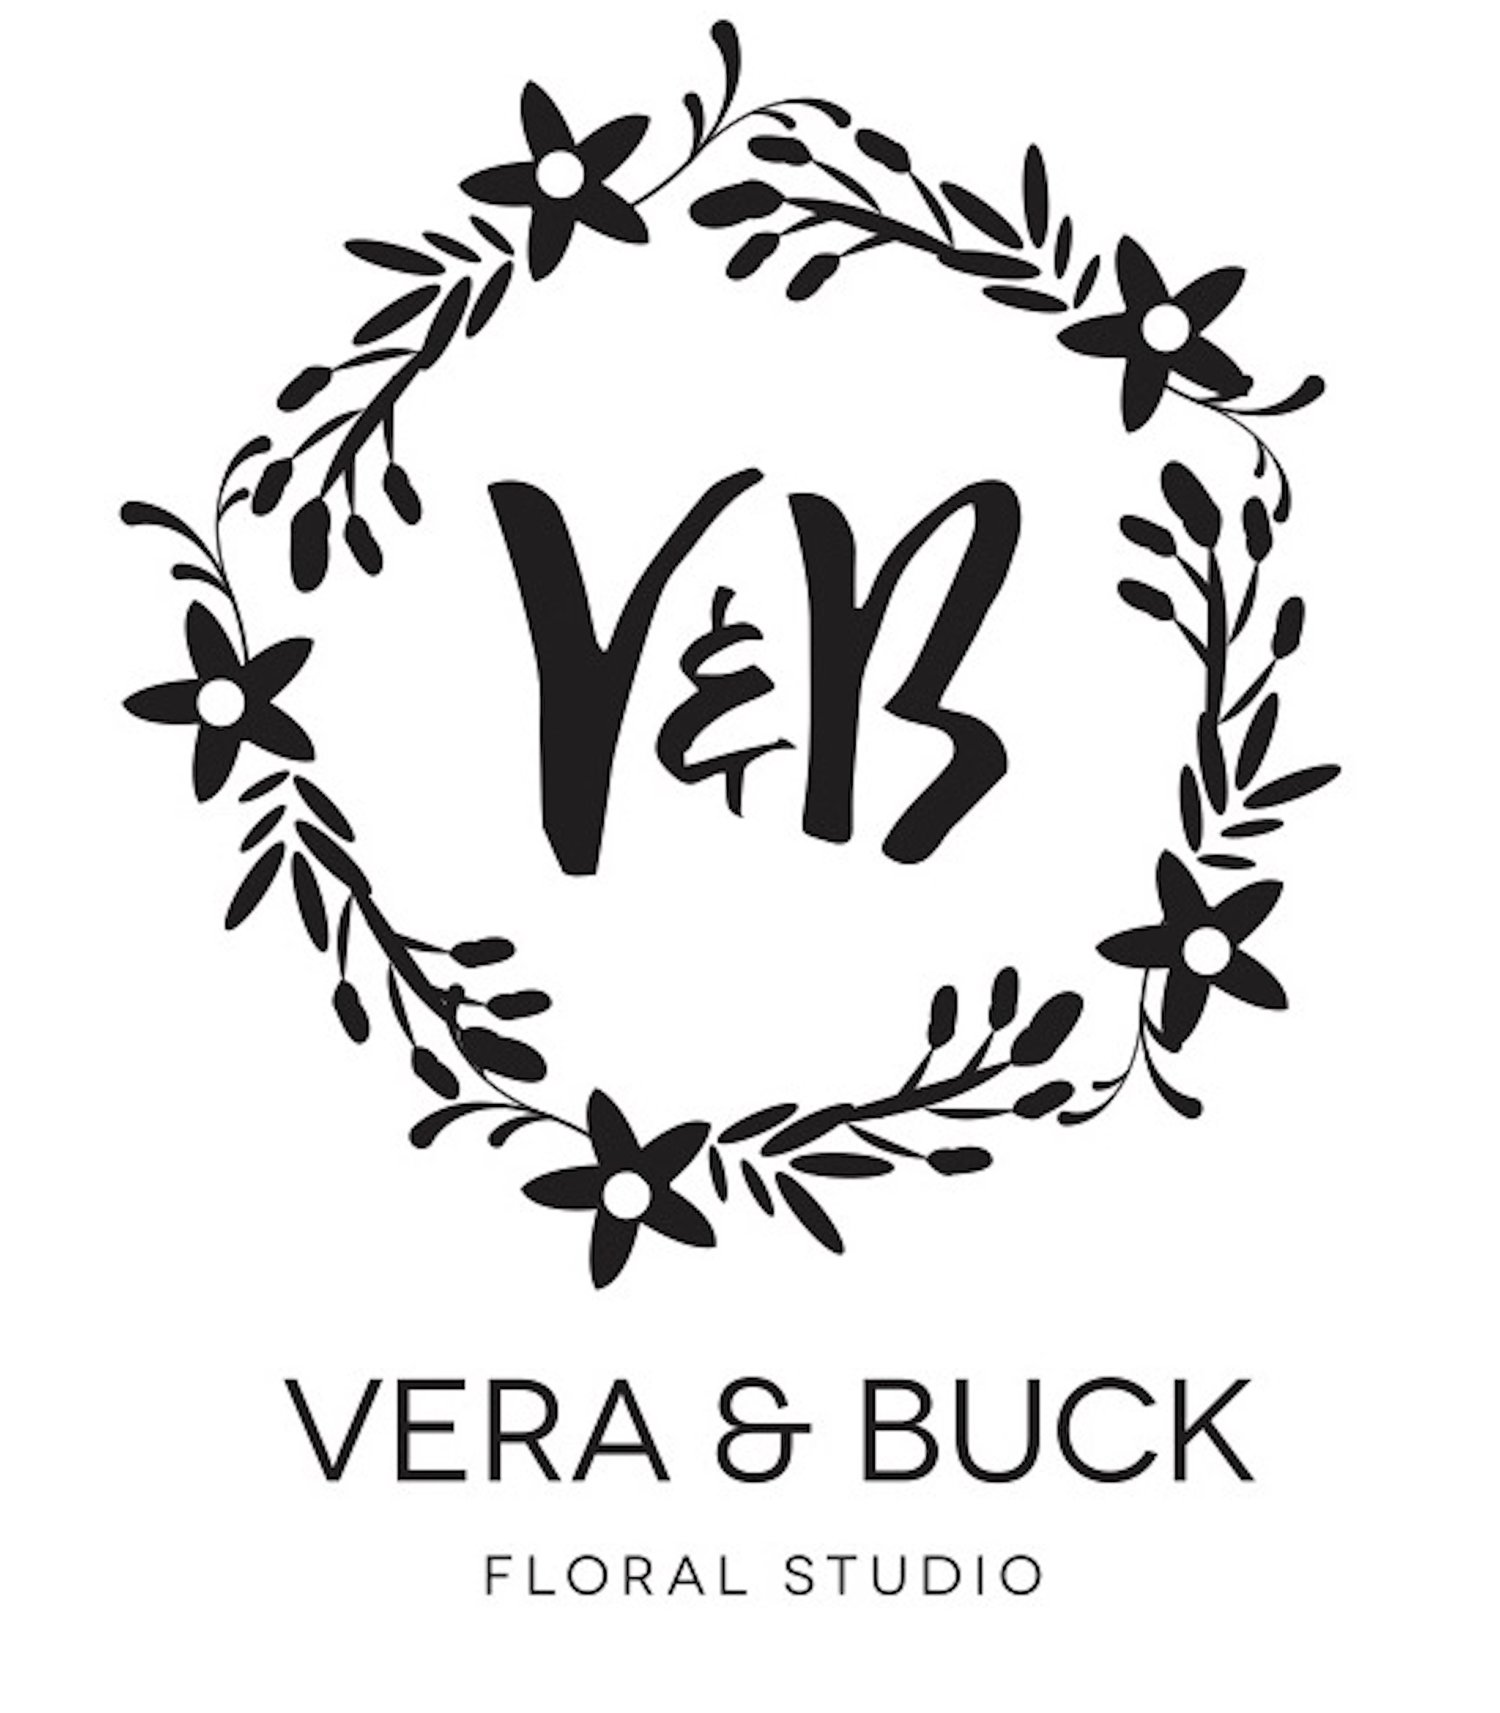 Vera & Buck Floral Studio and Farm